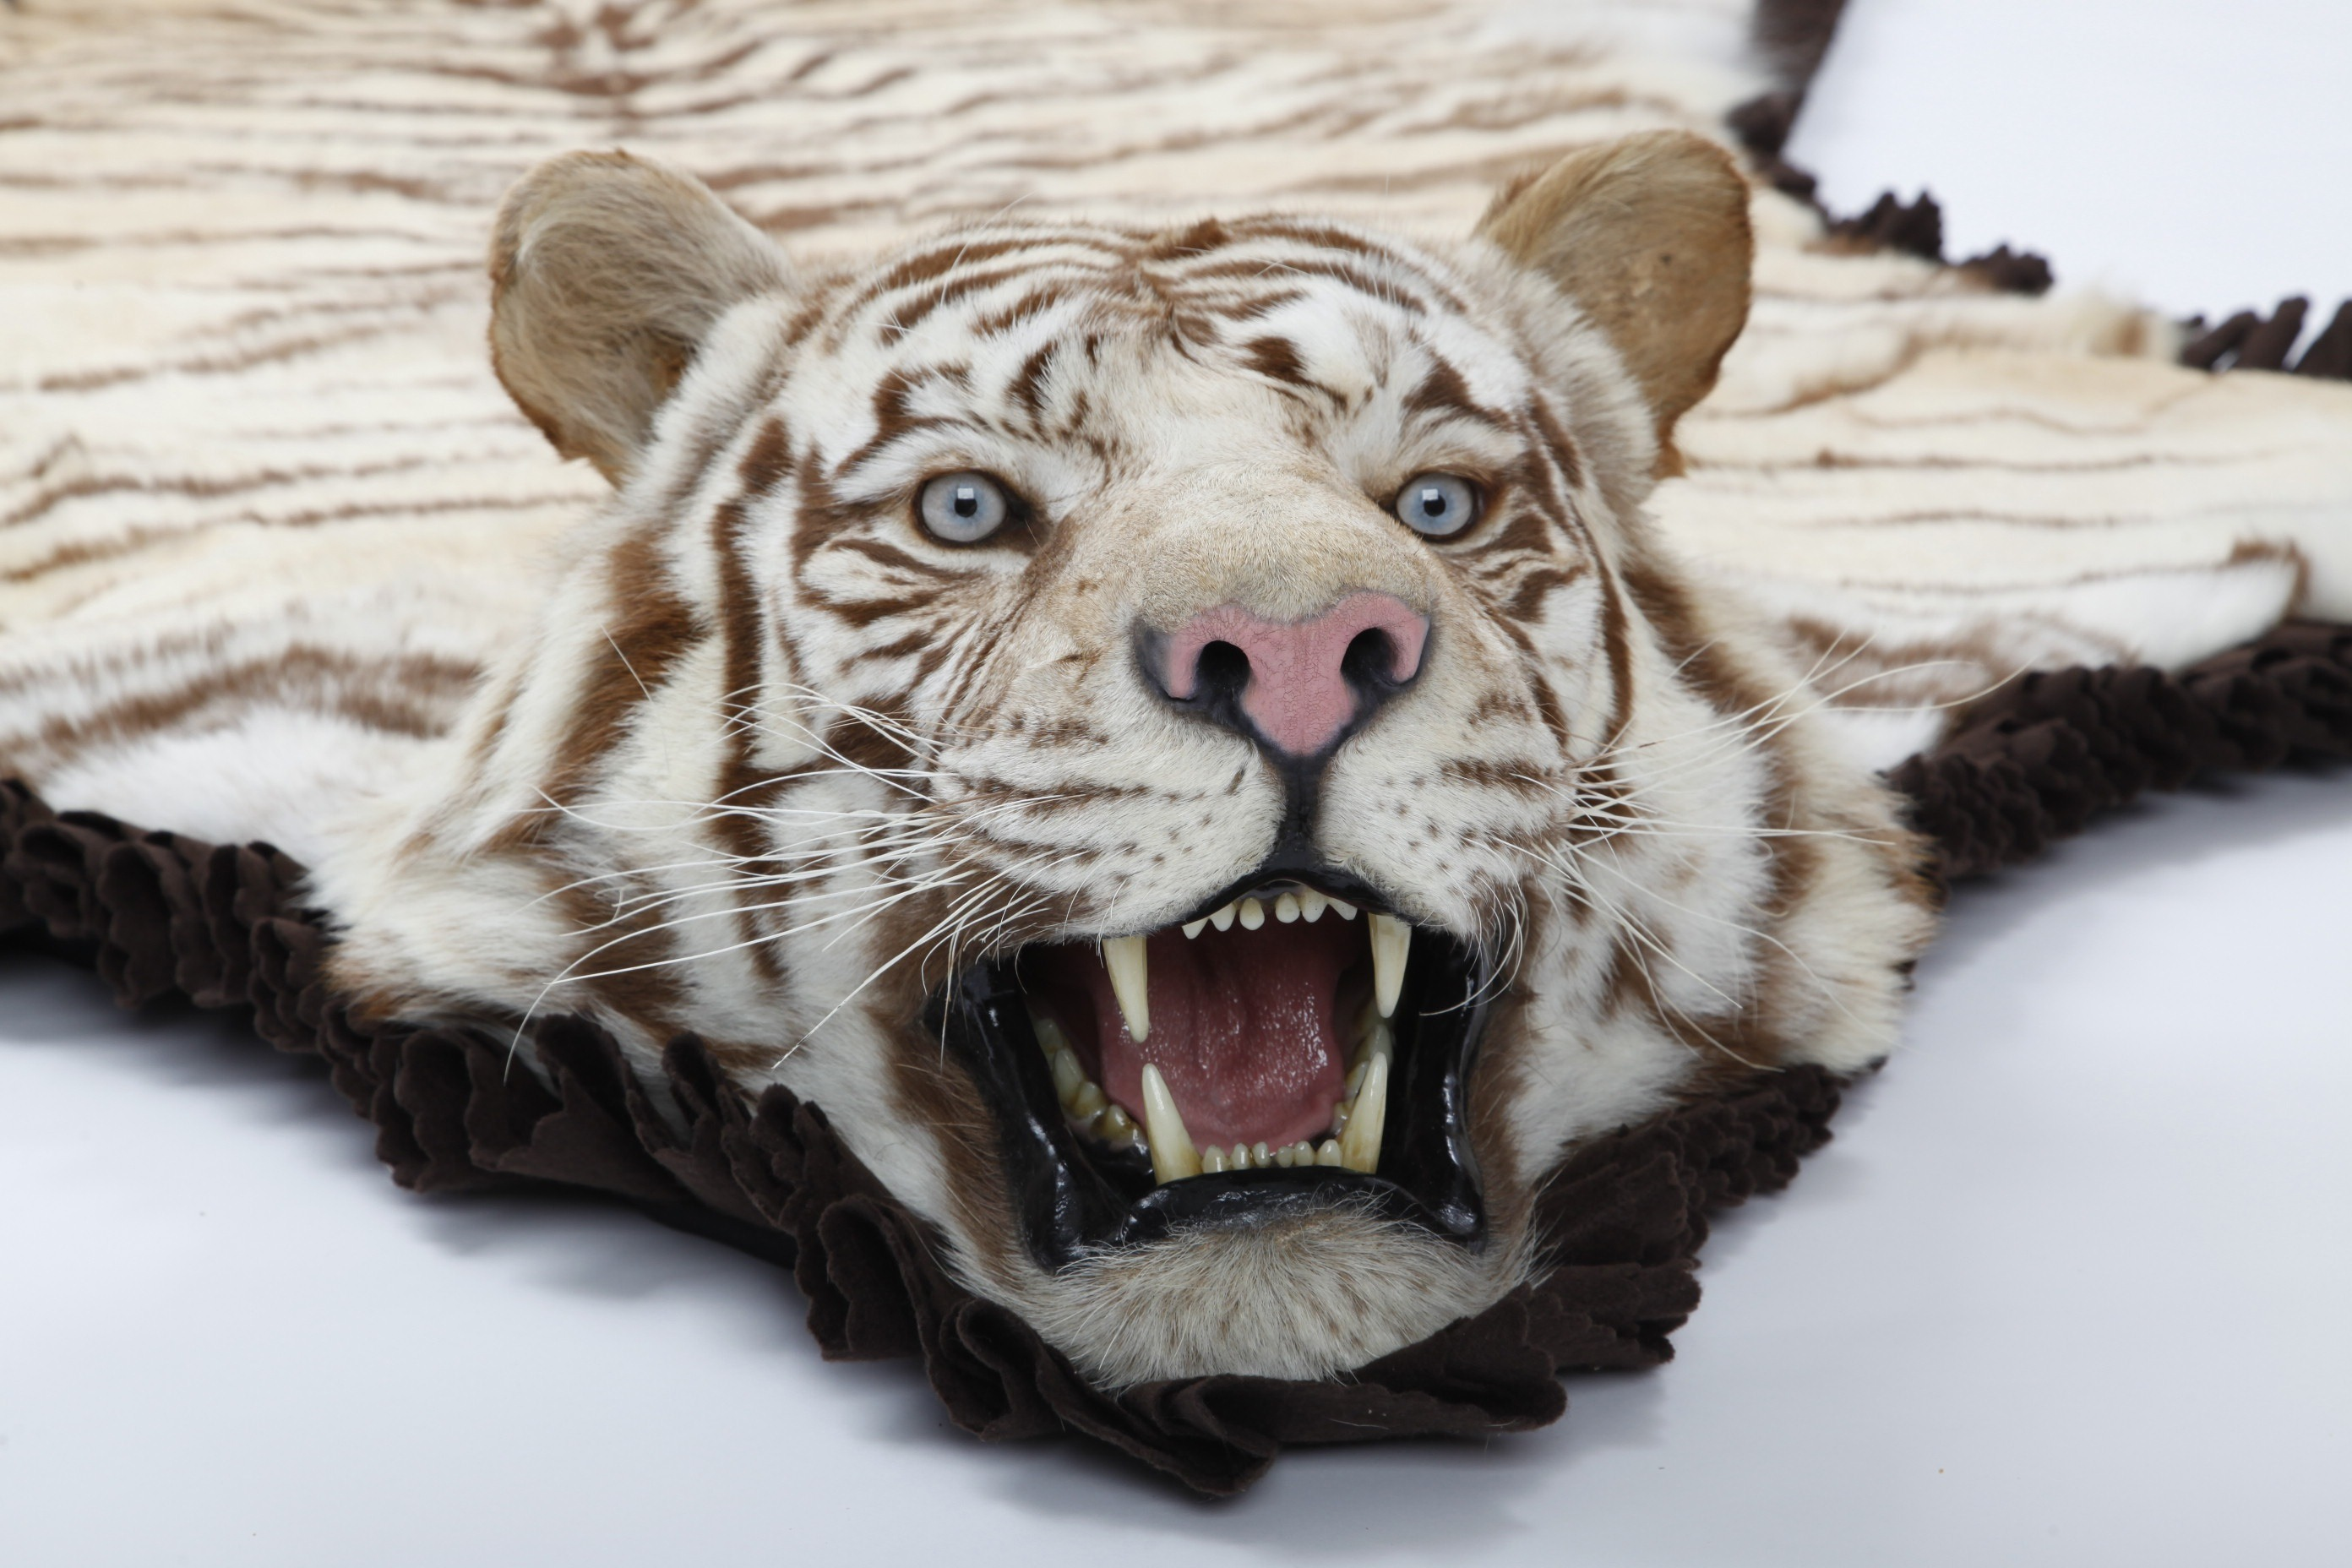 Real White Tiger Skin Rug Home Decor